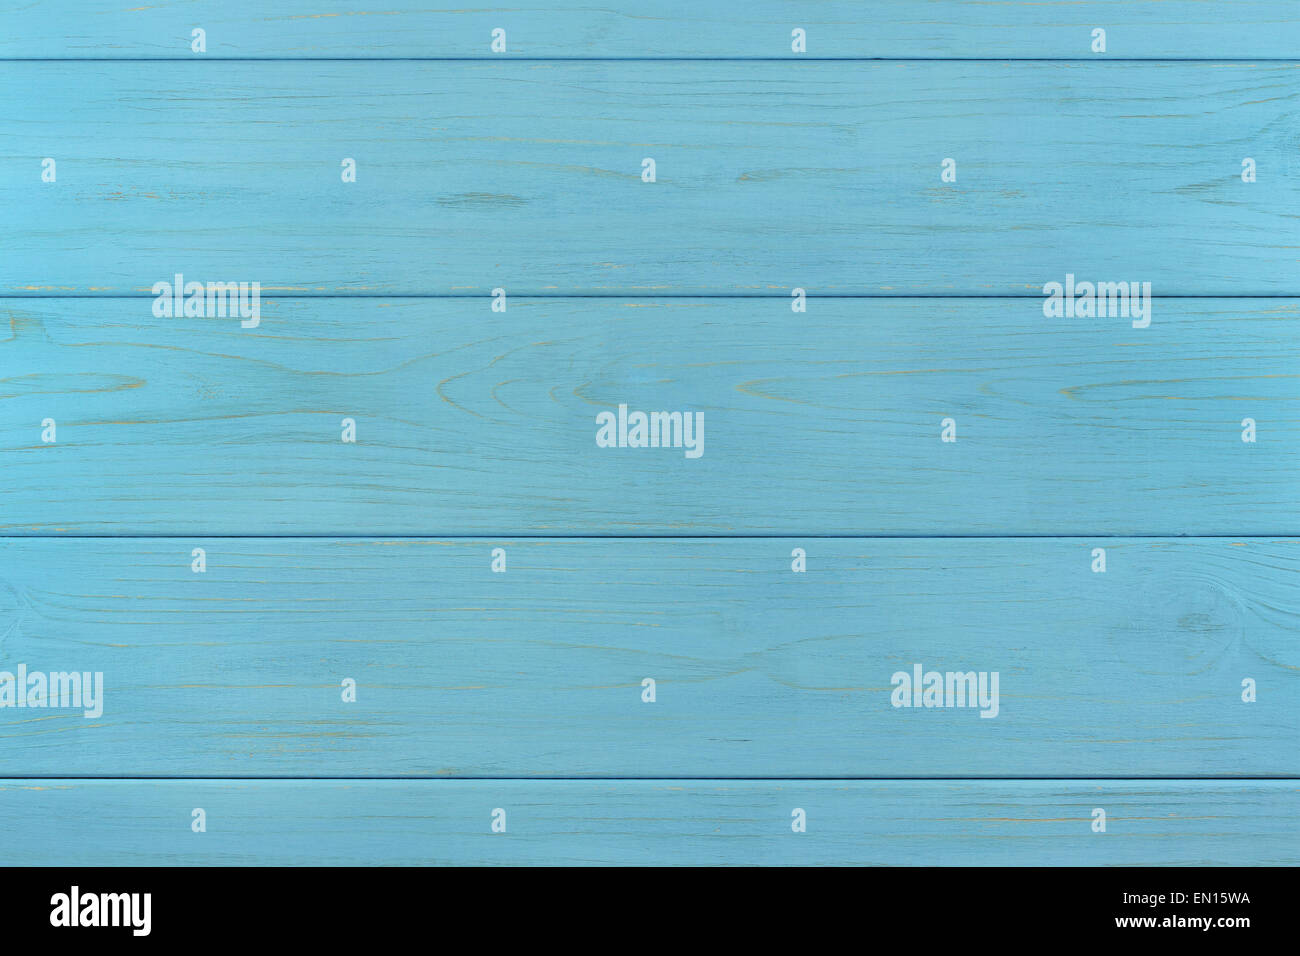 Azure wooden painted boards assembled like background Stock Photo